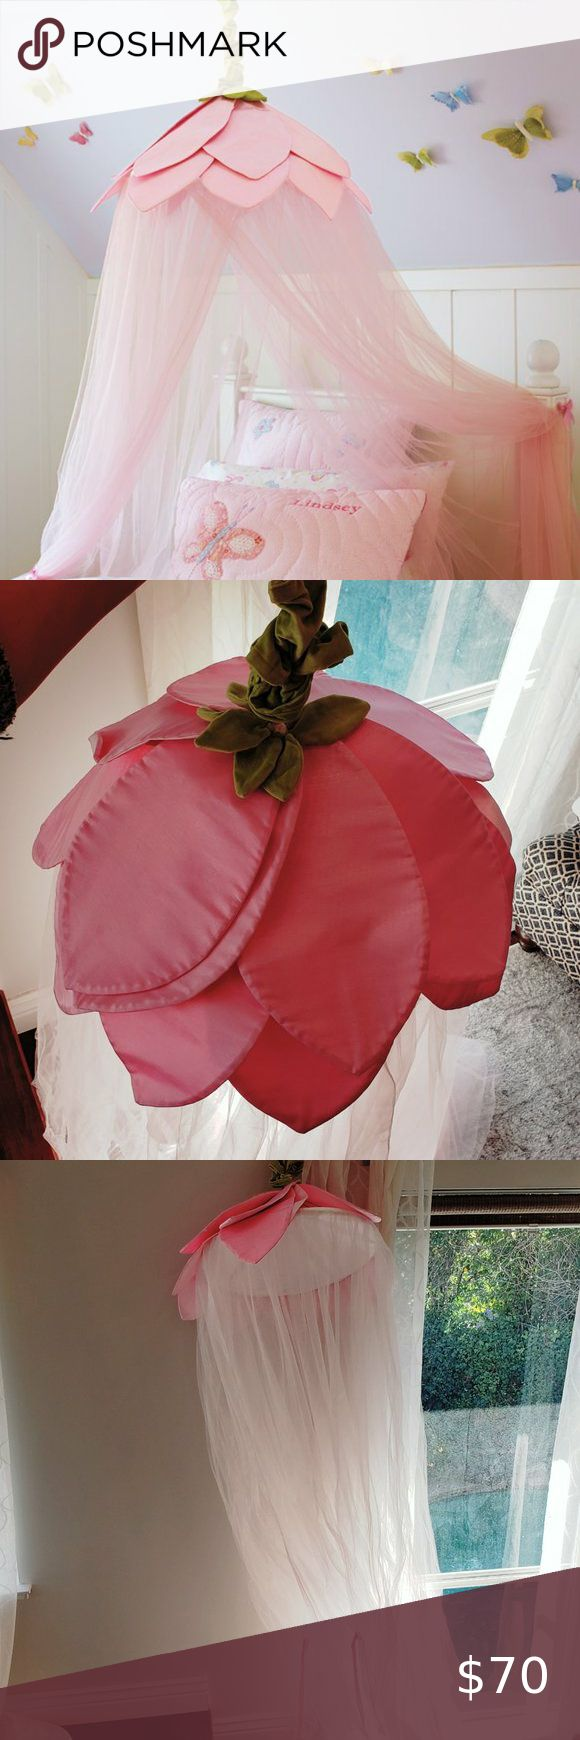 Pottery Barn Kids Pink Rose Petal Tulle Canopy In 2020